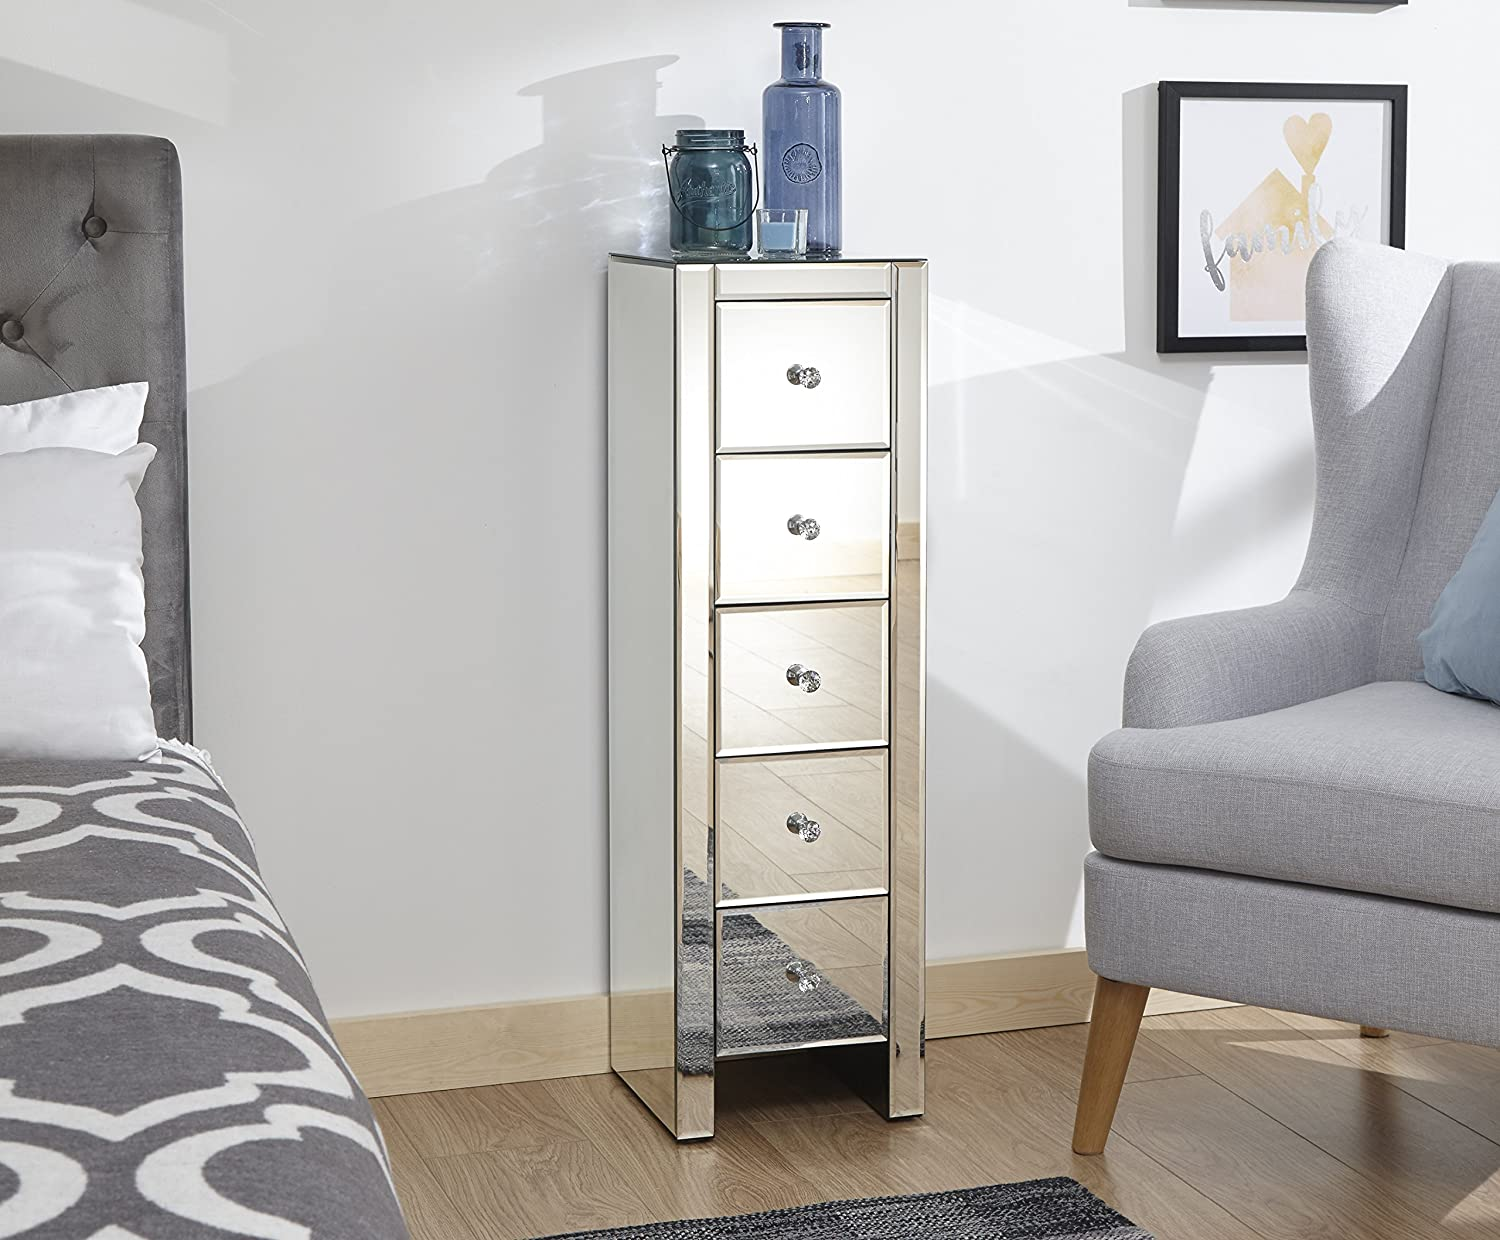 Diamante Handles GFW Furniture Mirrored 2 4 or 5 Clear Glass Slim Chest of Drawers 3